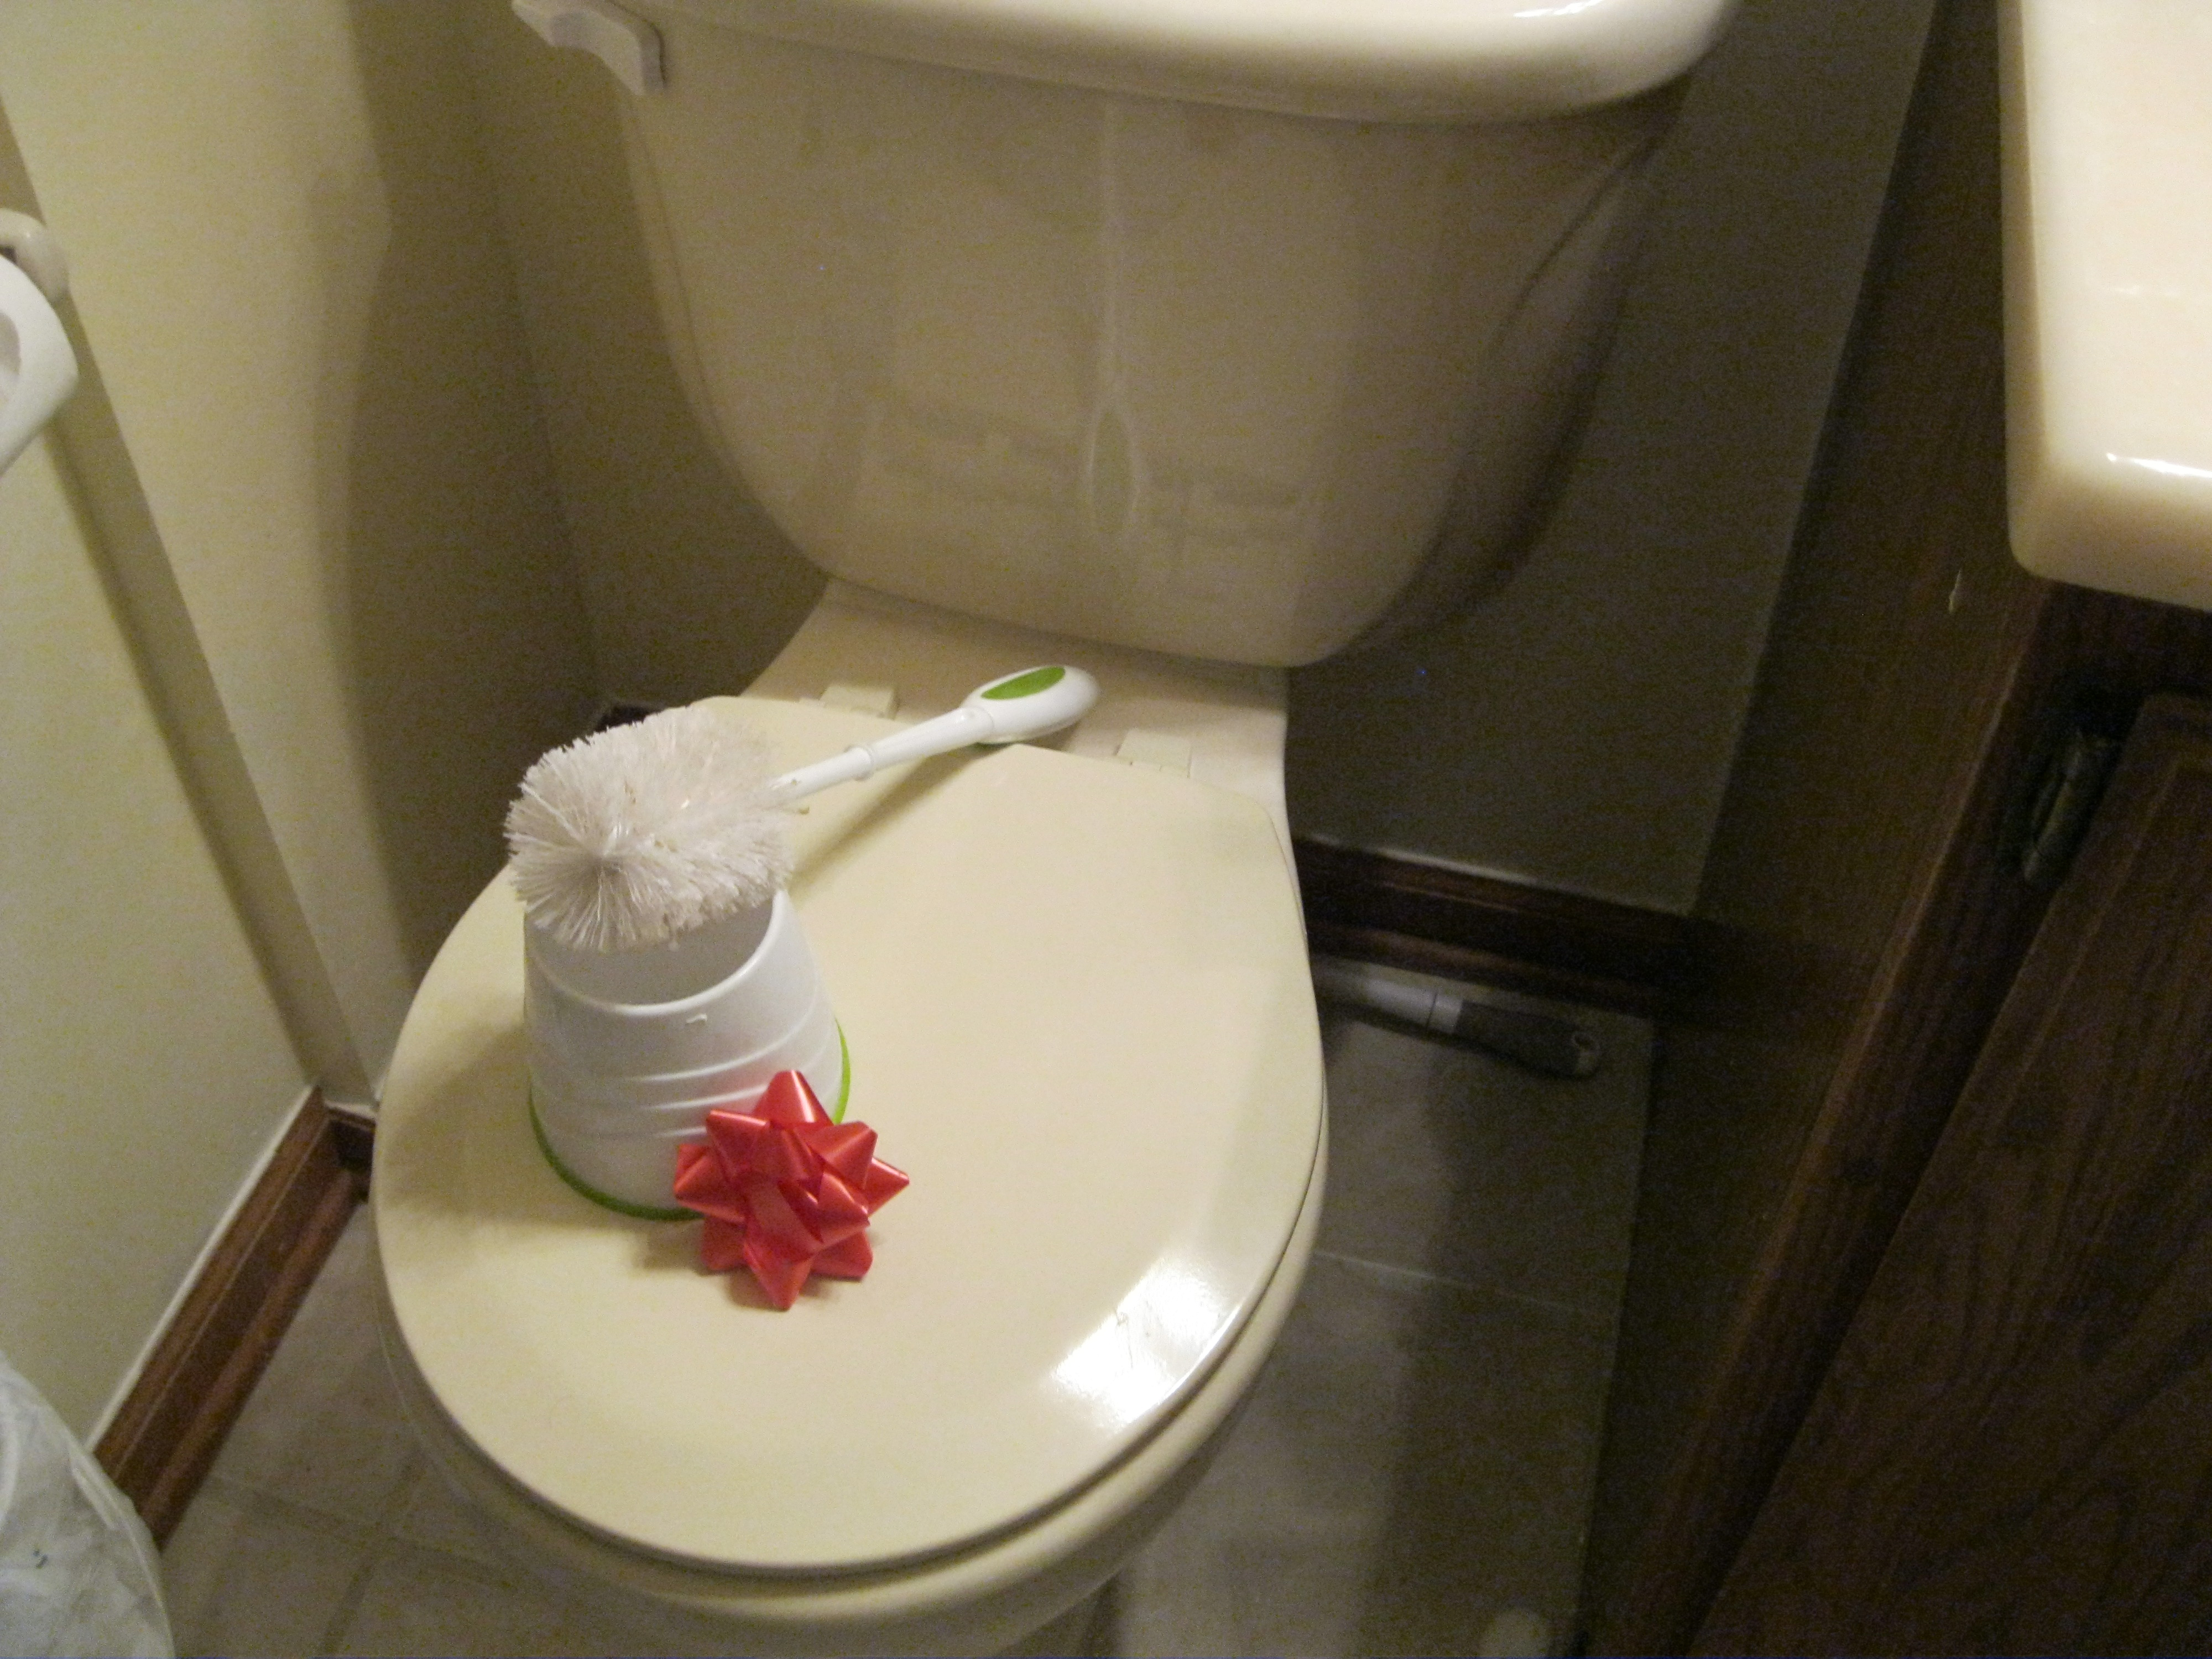 Pictures of Mucus Plug On Toilet Paper - stargate-rasa info